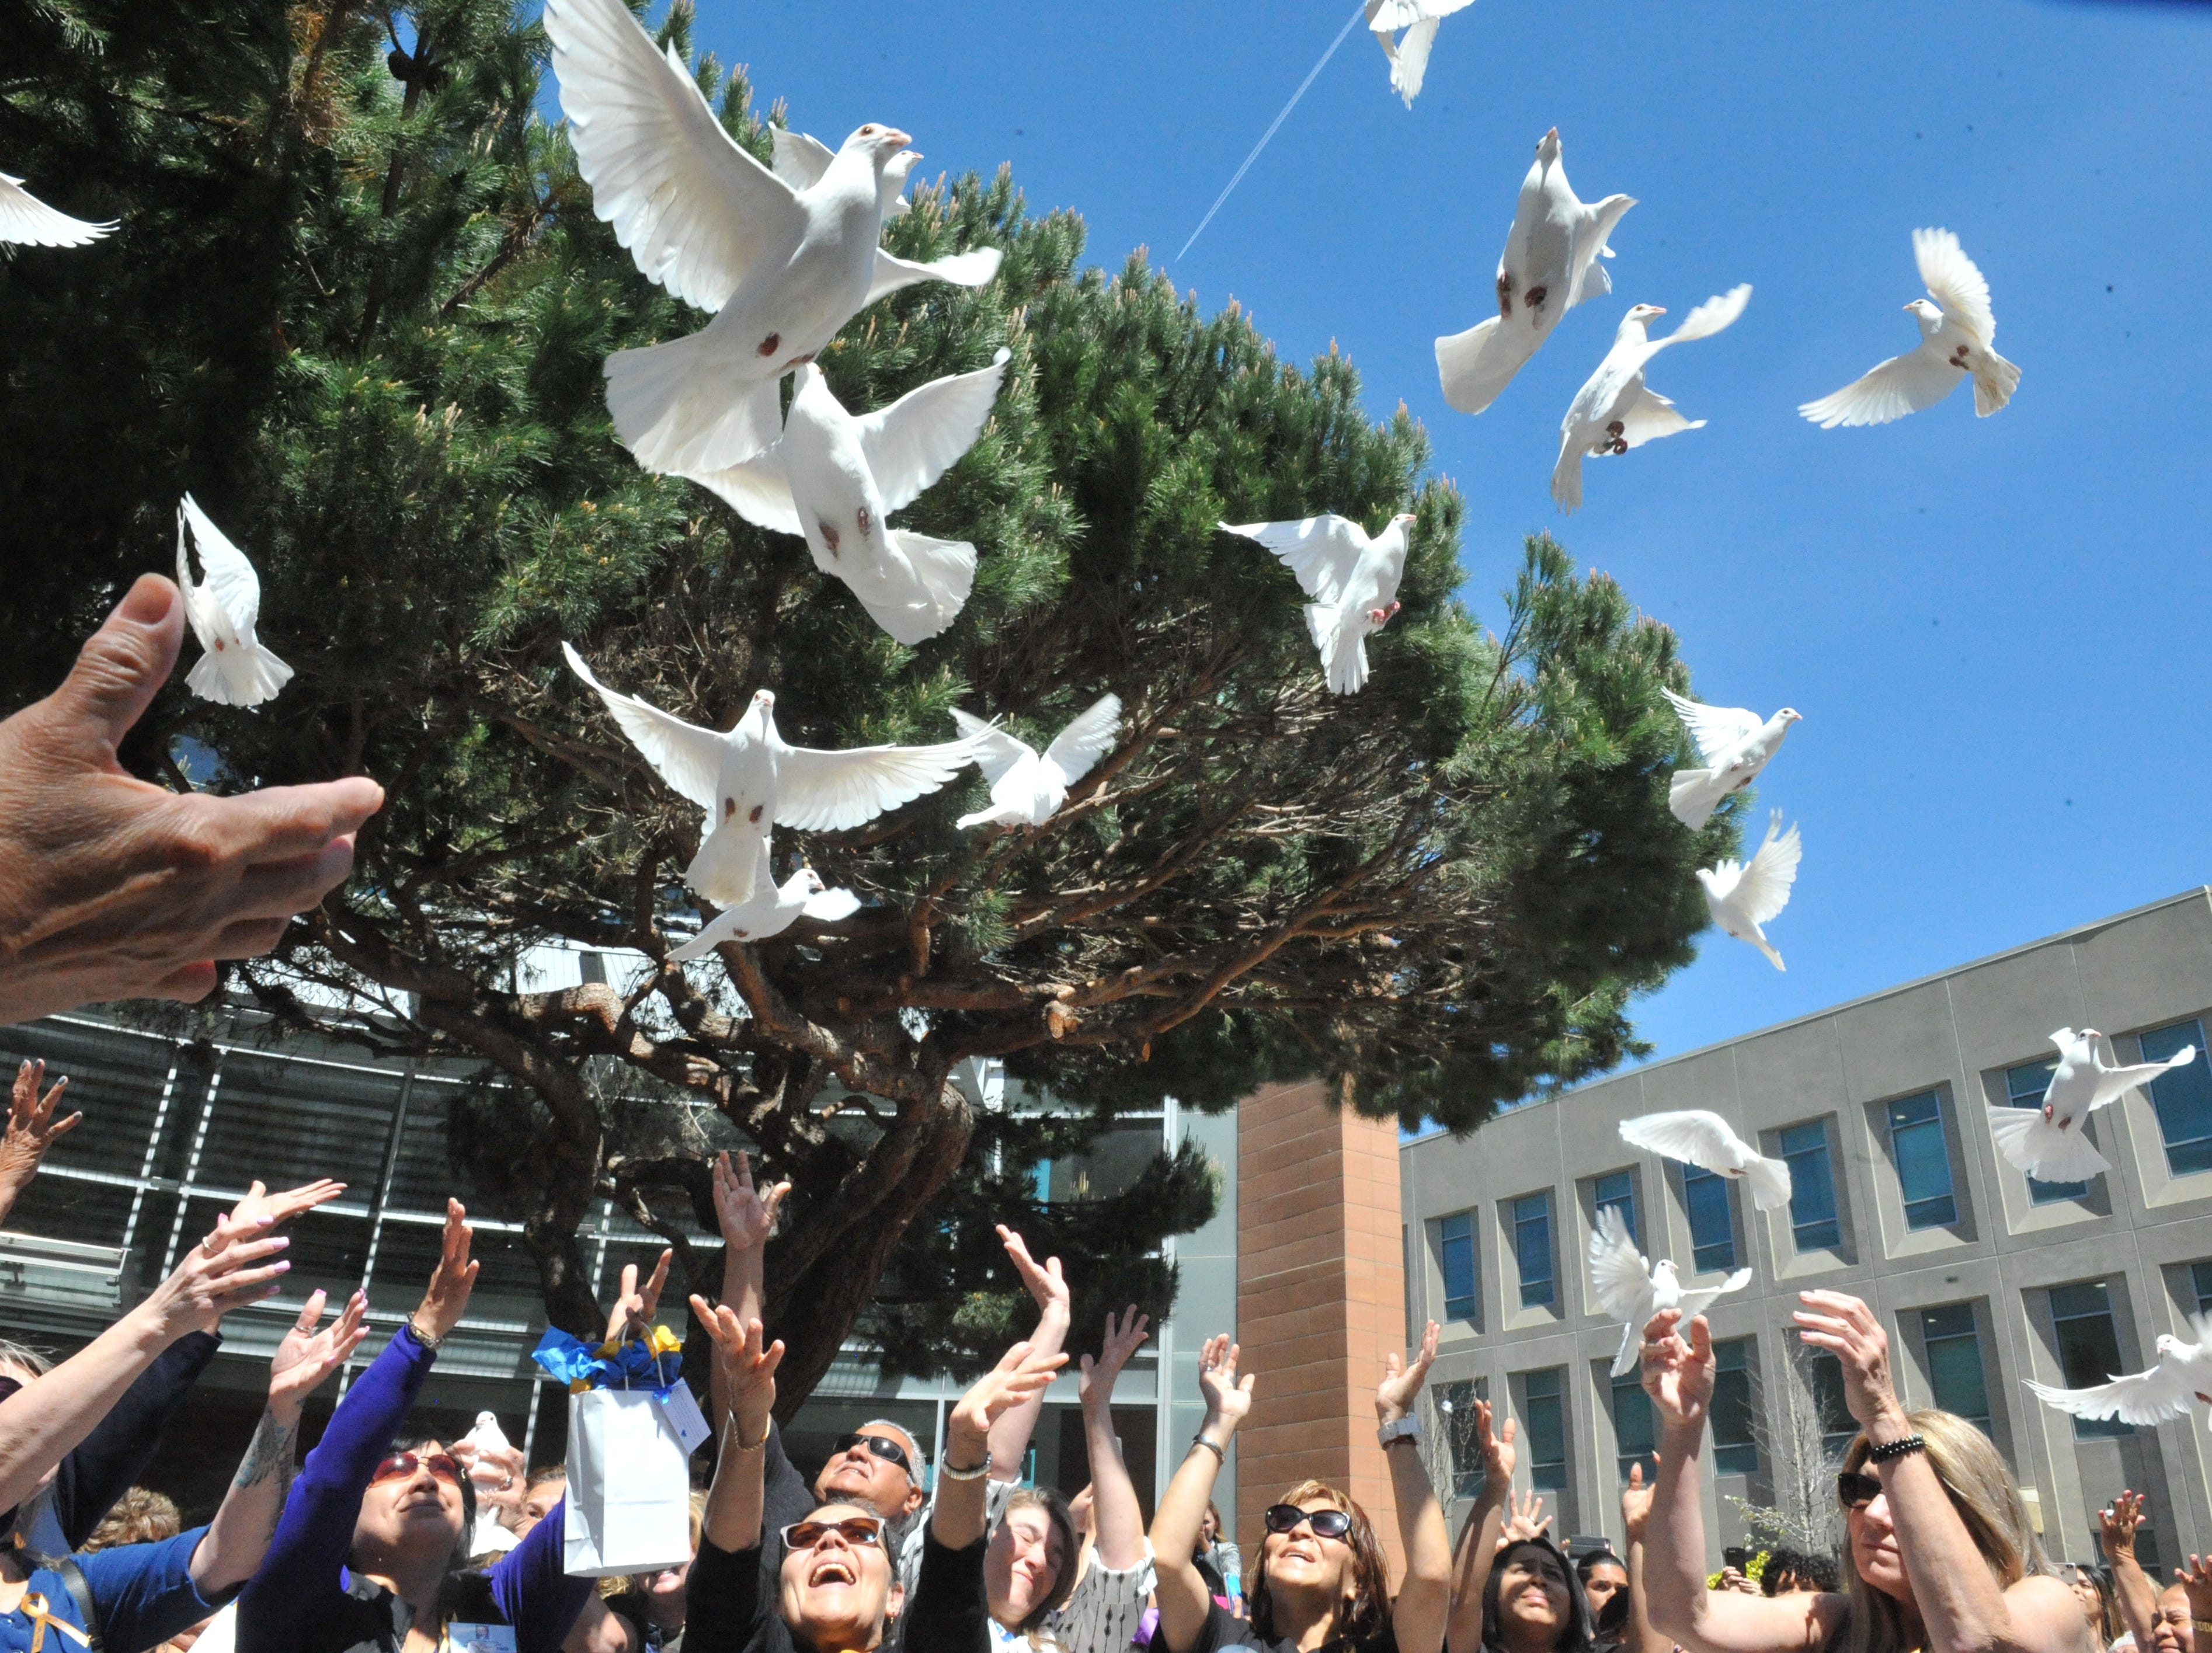 Friends and family release doves during National Crime Victims' Rights Week in honor of their loved ones who were lost to violence. April 12, 2019.